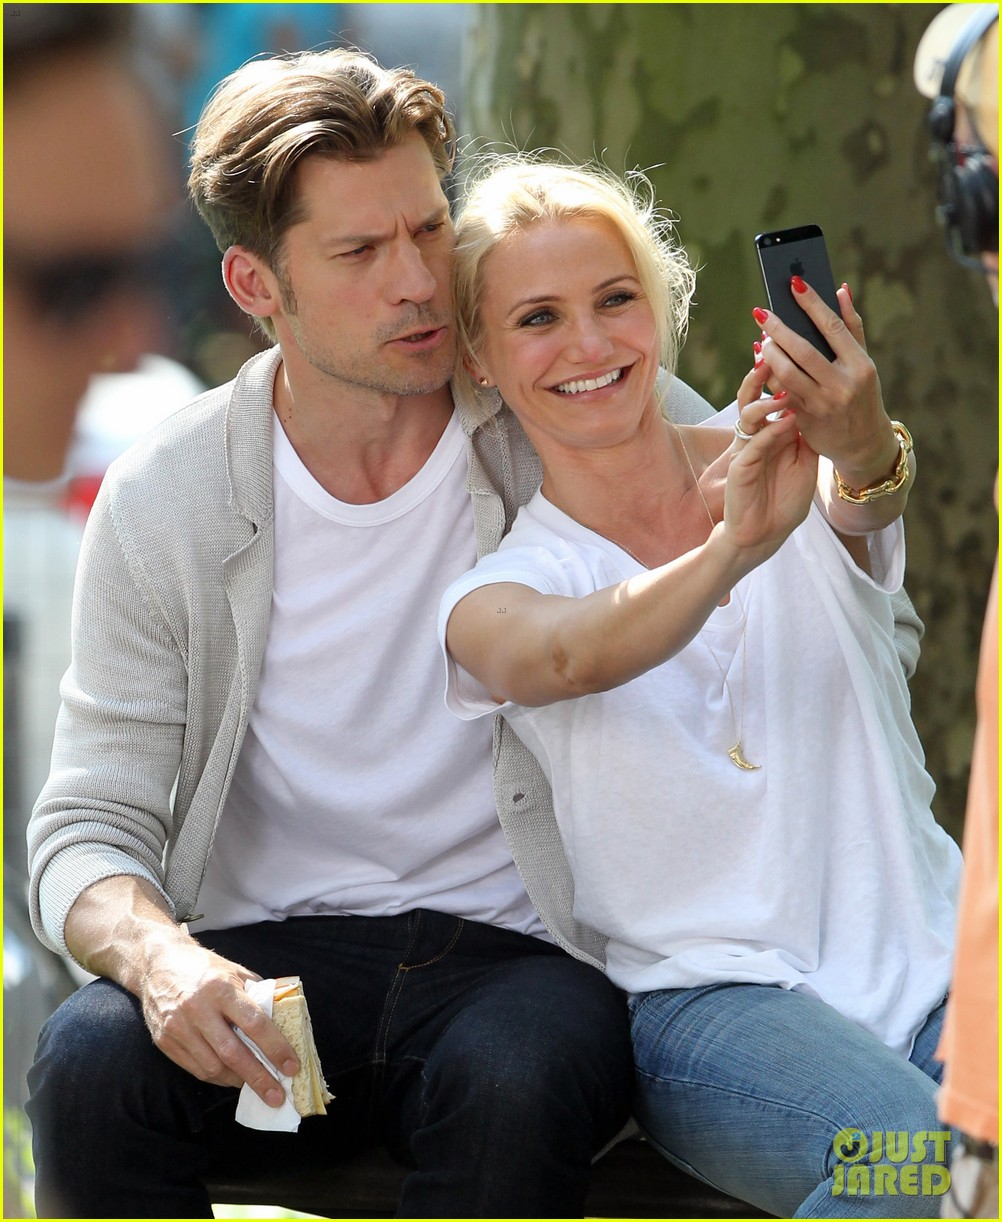 Full Sized Photo of cameron diaz nikolaj coster waldau ... Justin Timberlake